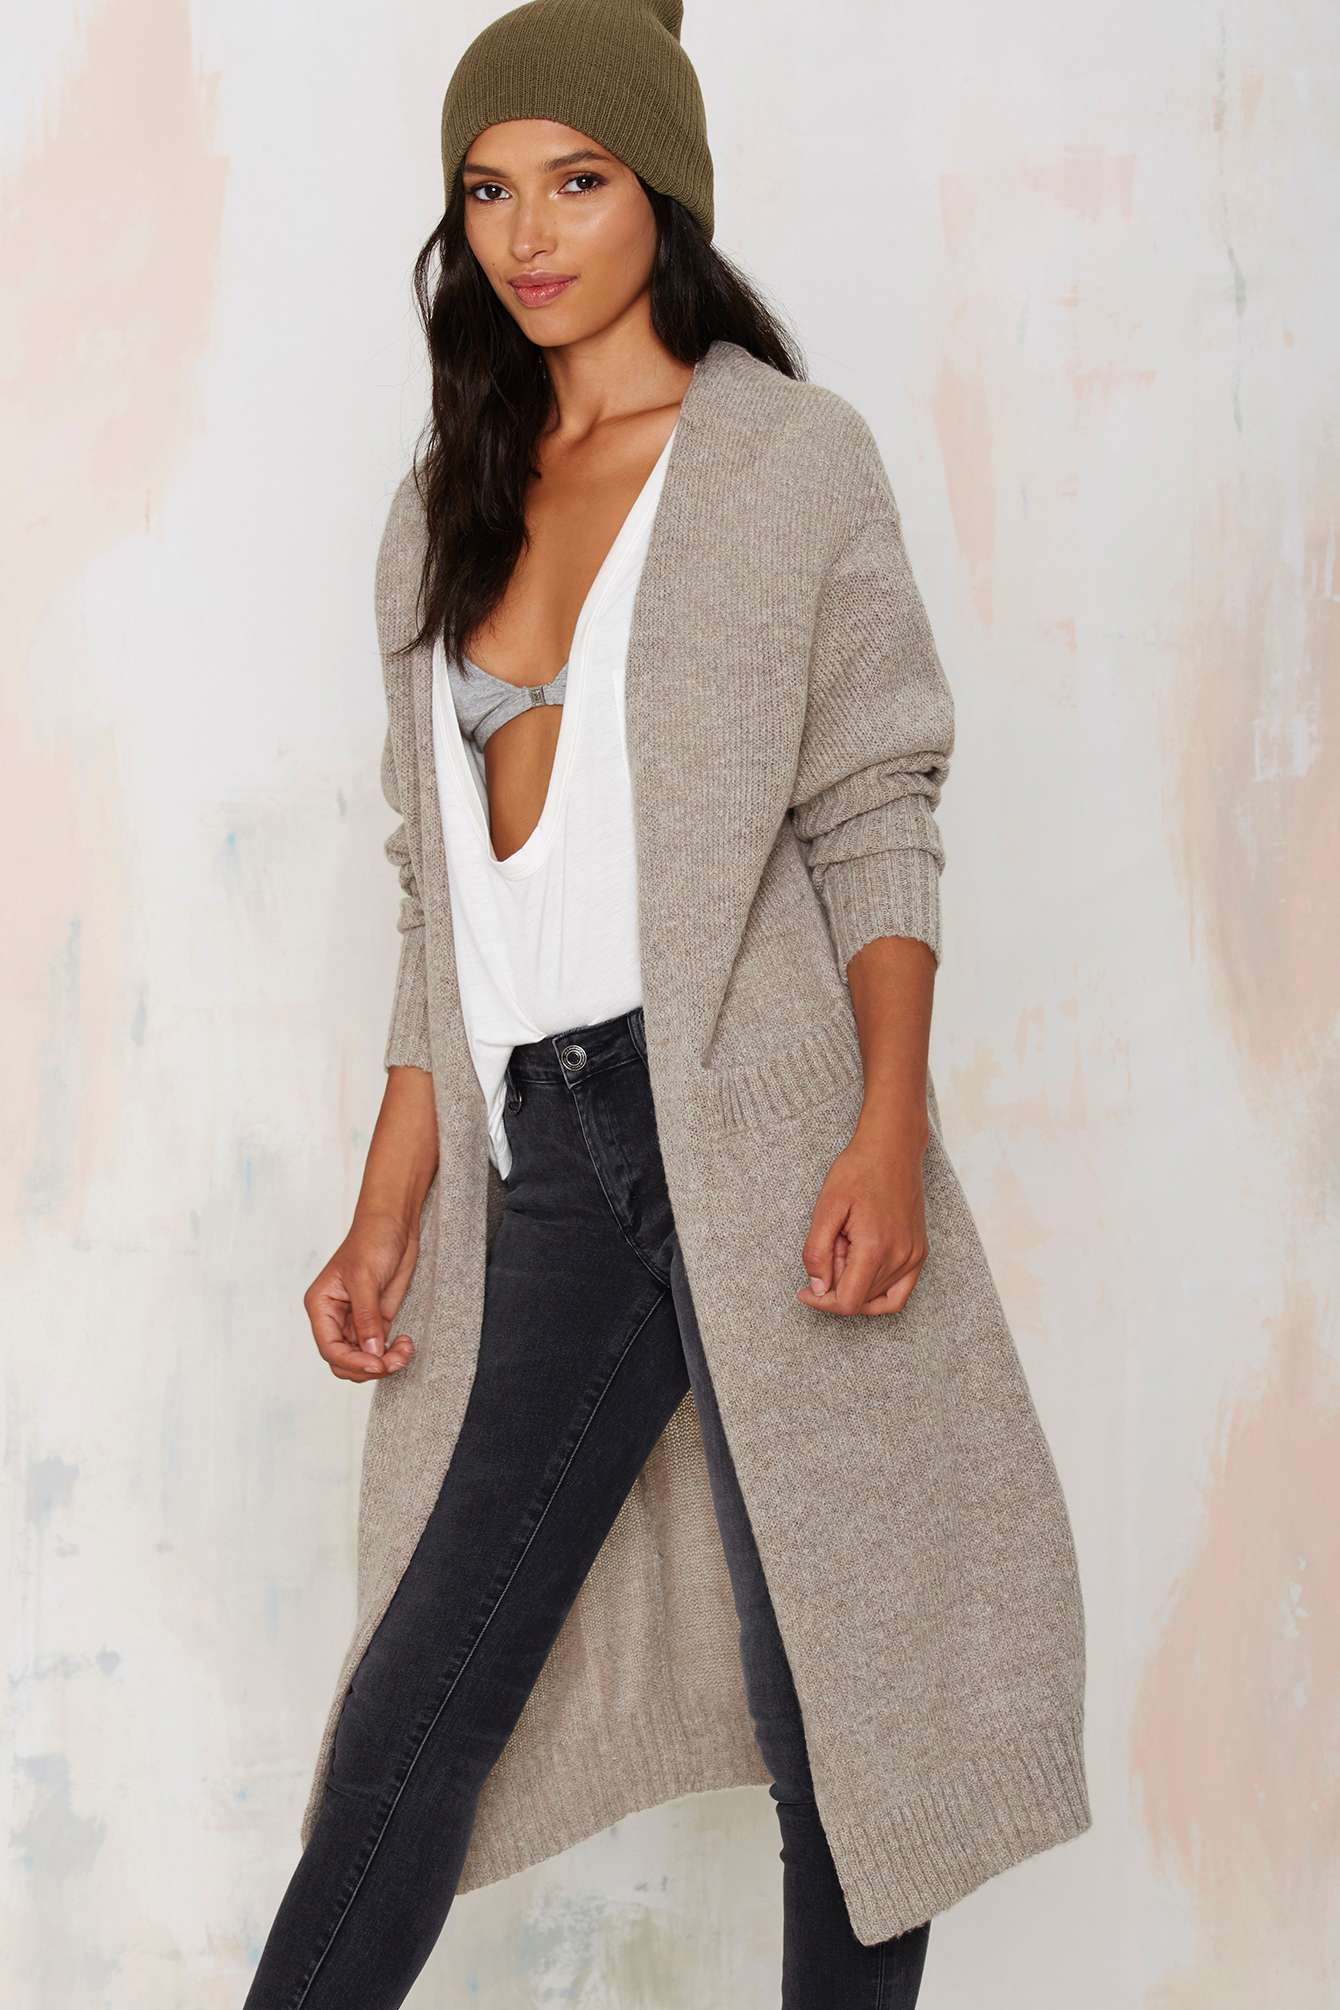 Nasty gal So Heated Duster Cardigan in Natural | Lyst